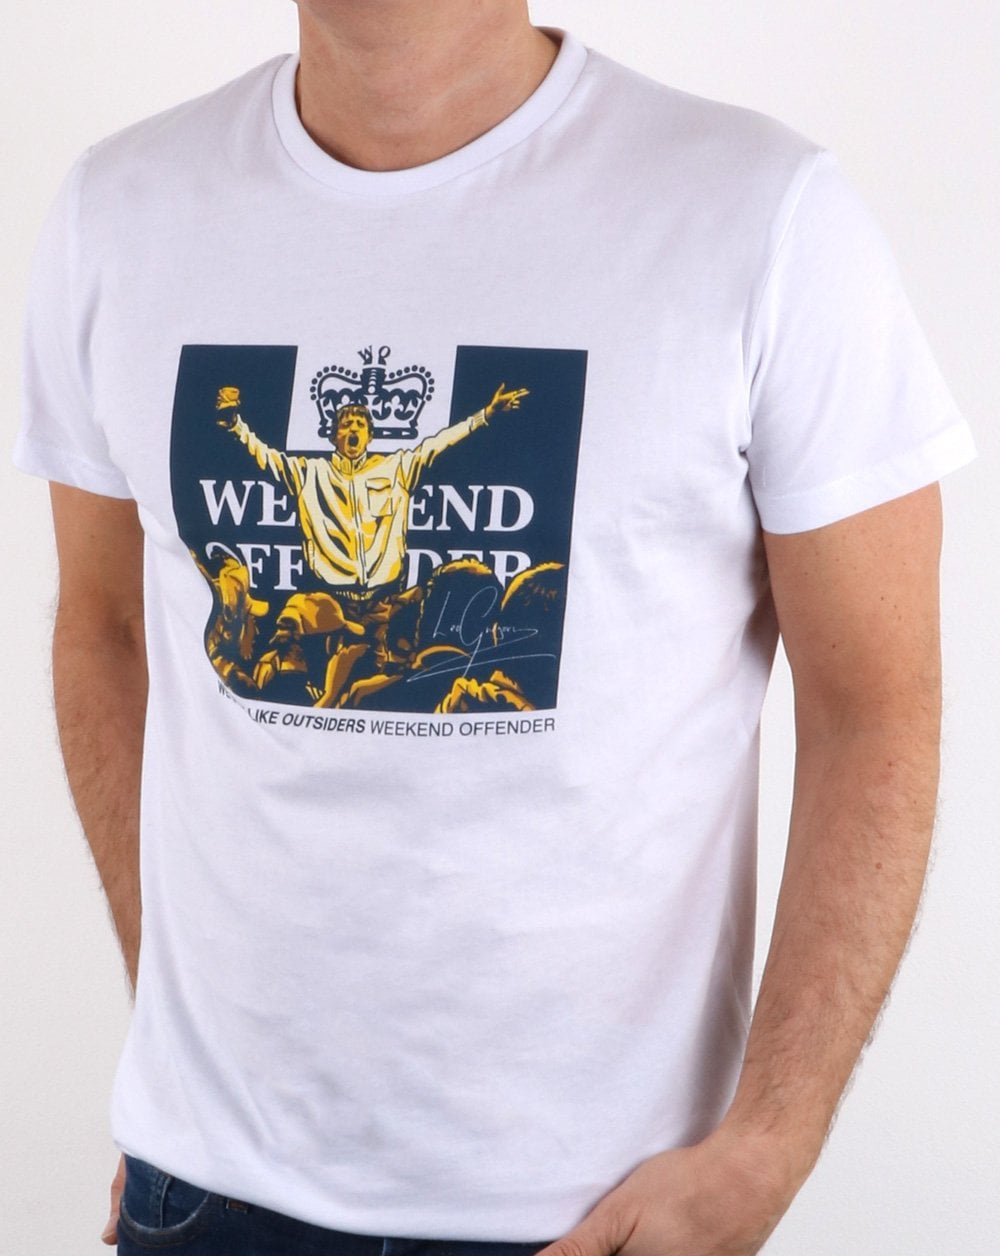 Weekend Offender Weekend Offender Leo Gregory T Shirt White d0c3727c5483